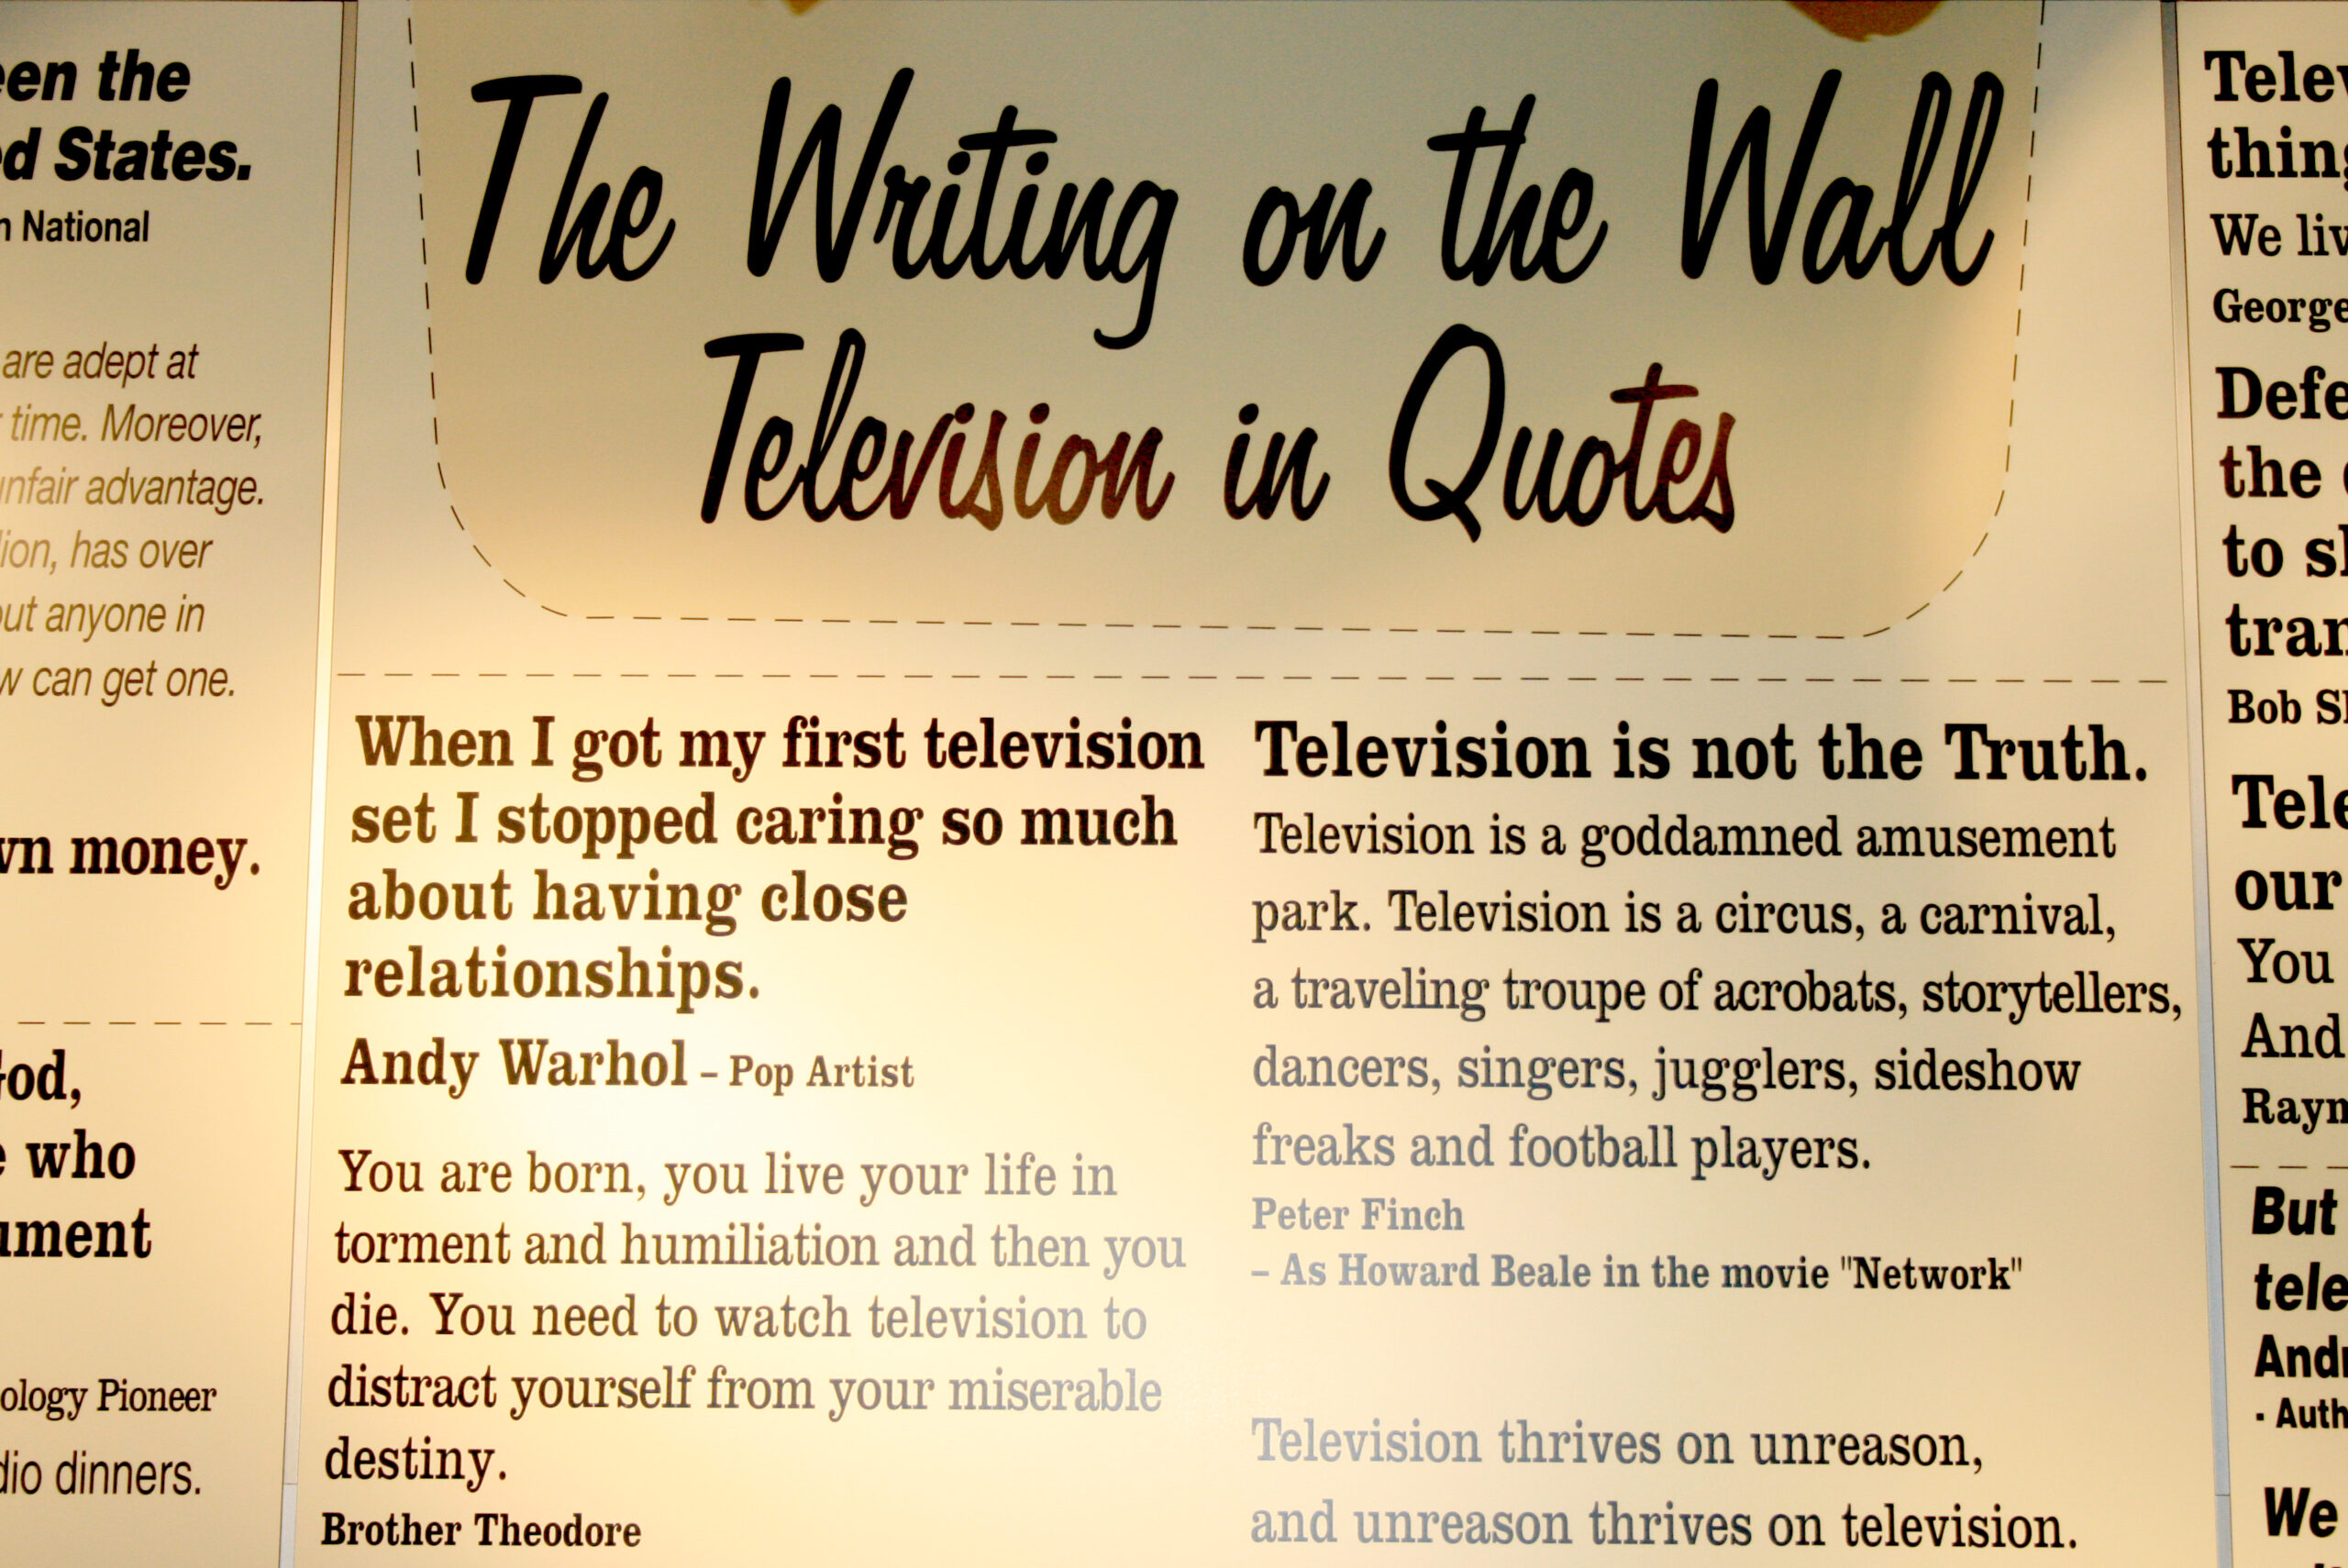 The Writing On the Wall: Television In Quotes